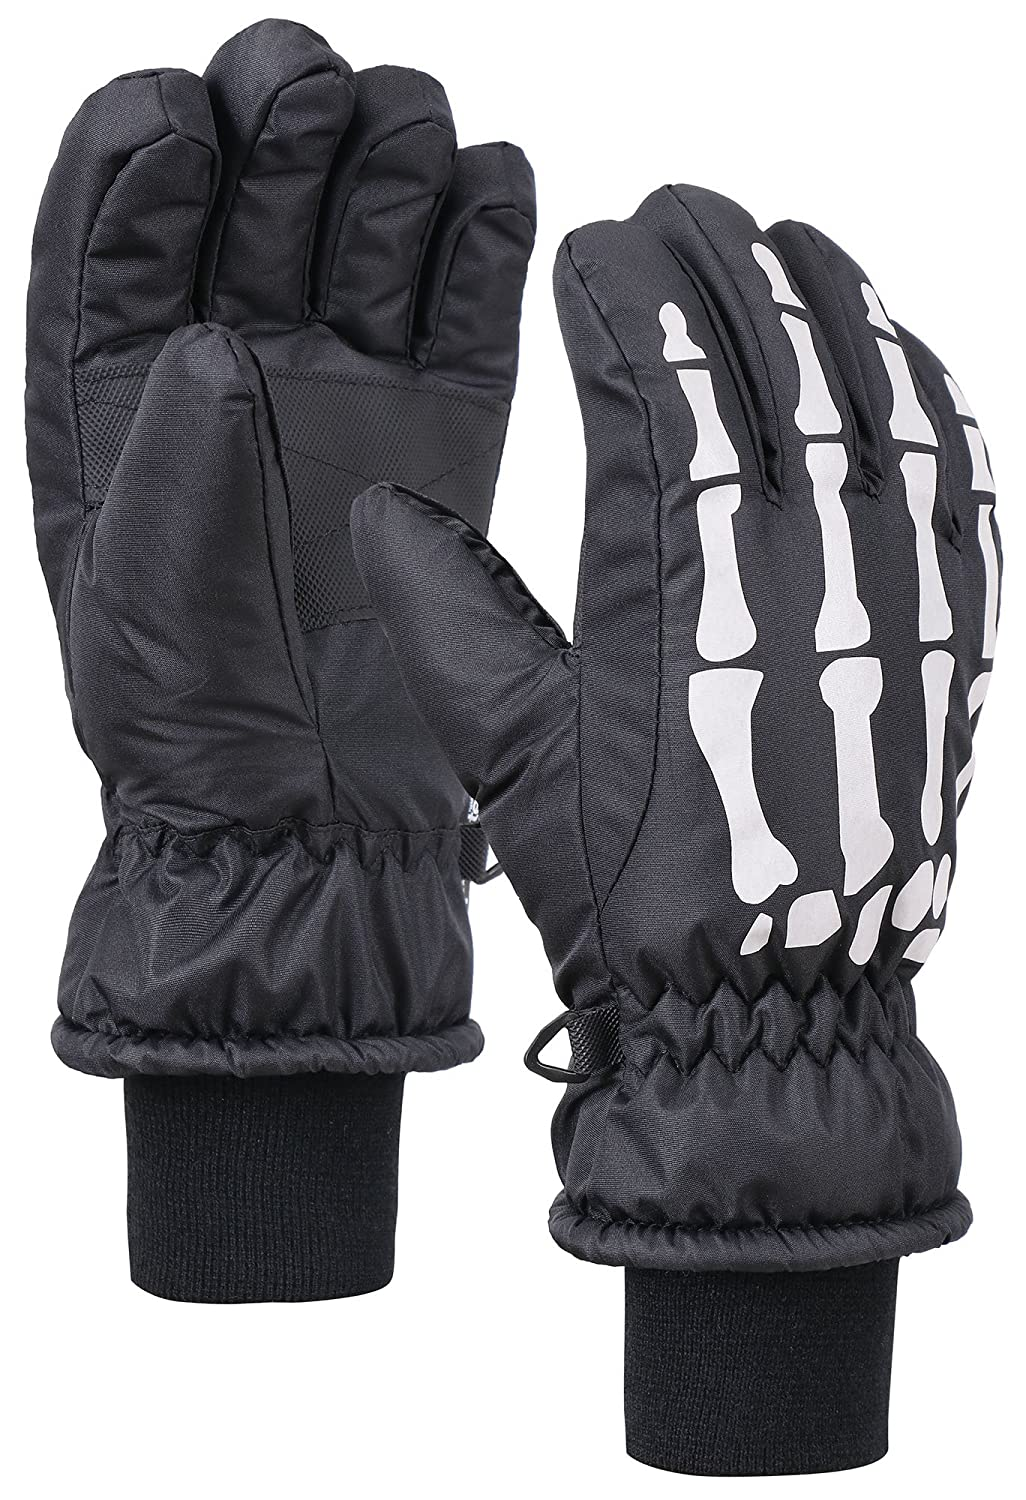 Andorra Kids Glow in the Dark Thinsulate Waterproof Snow Gloves, Skeleton